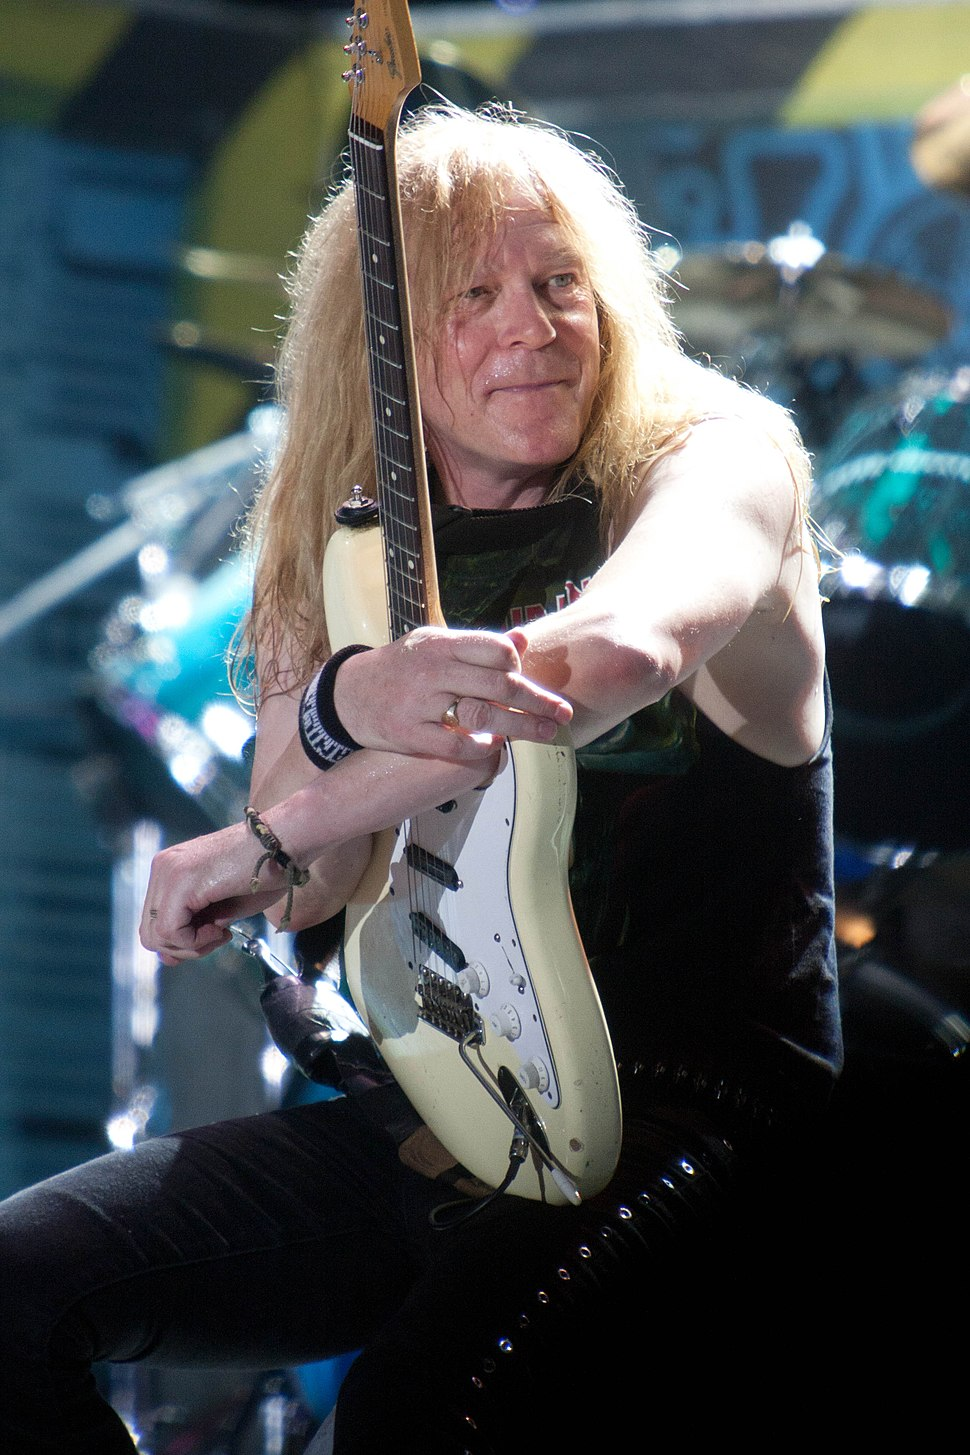 Janick Gers @ Bluesfest July 6 2010